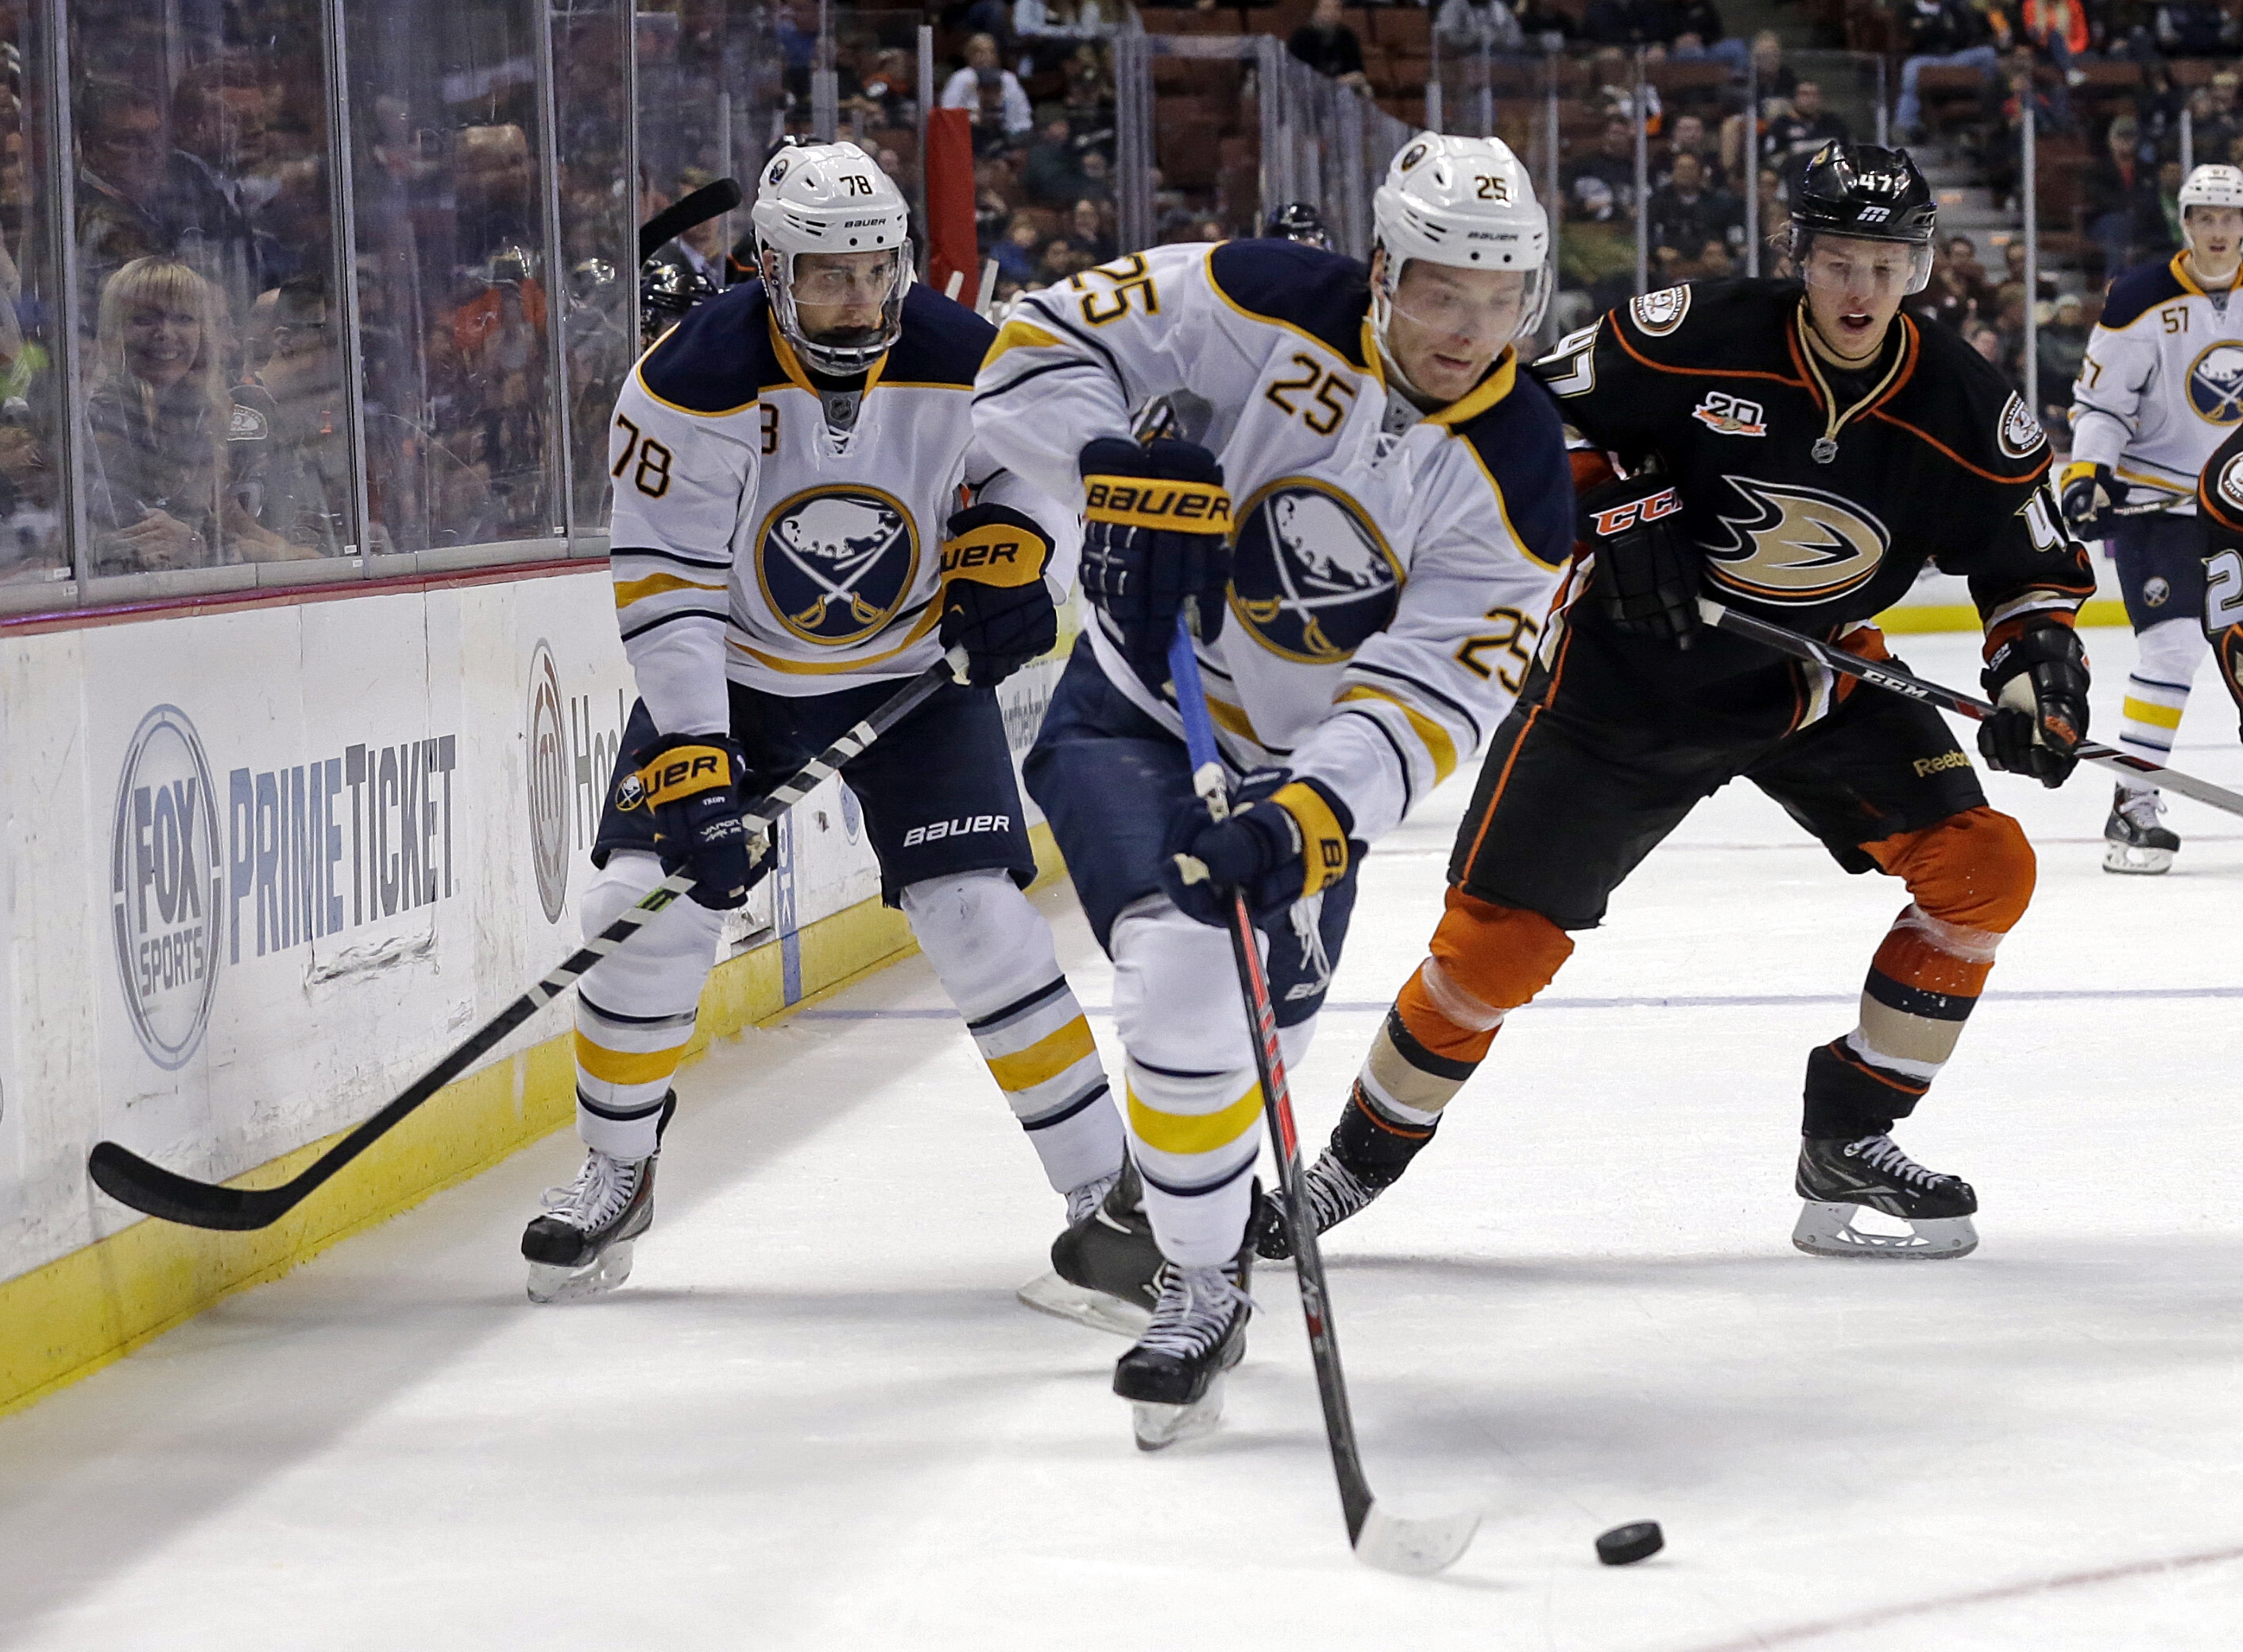 Mikhail Grigorenko scored two goals after being scratched for a week.